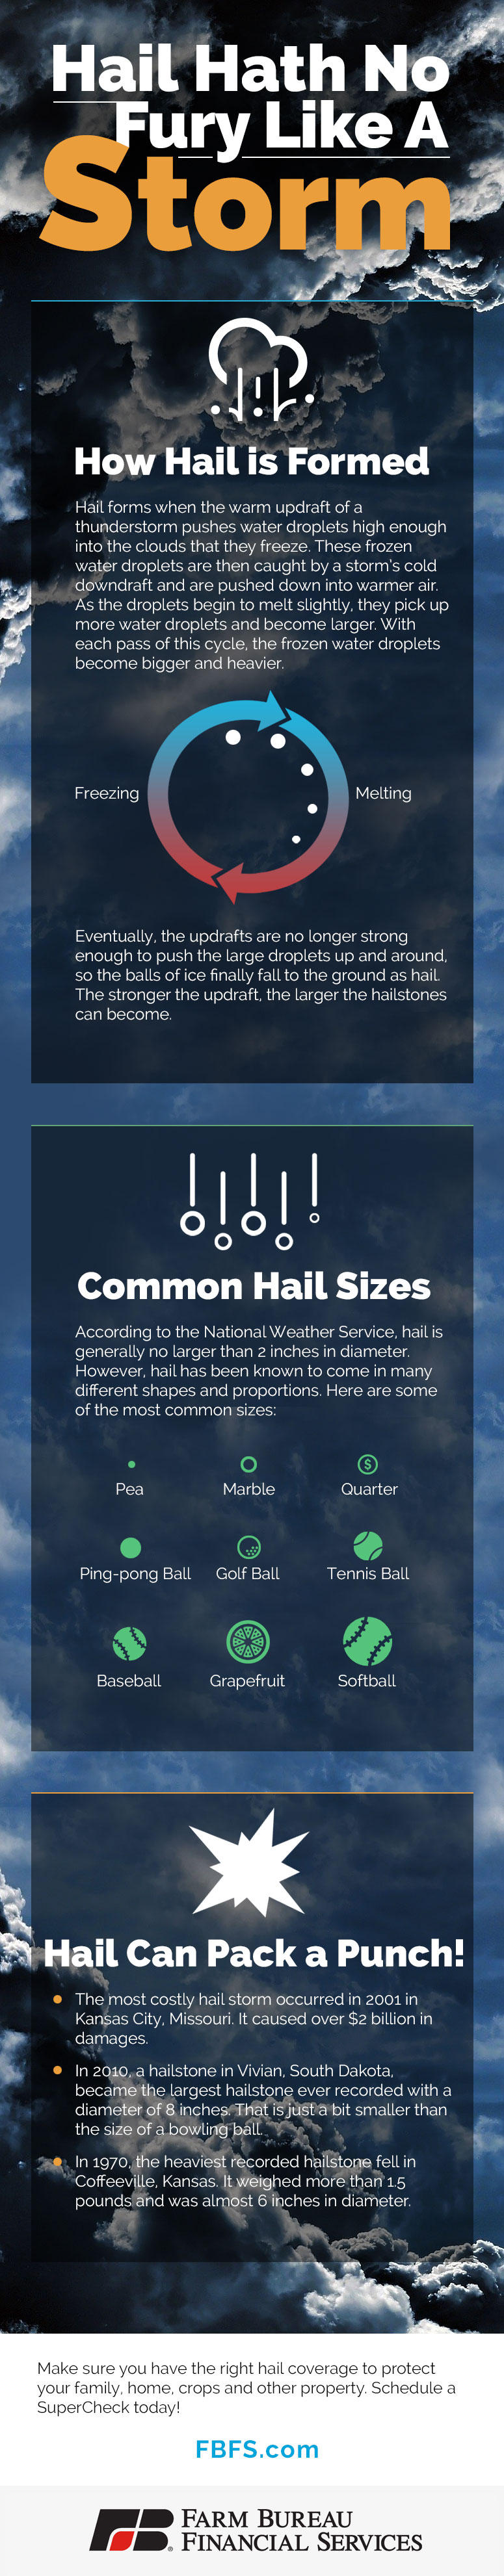 FBFS---Hail-Infographic-updated_URL